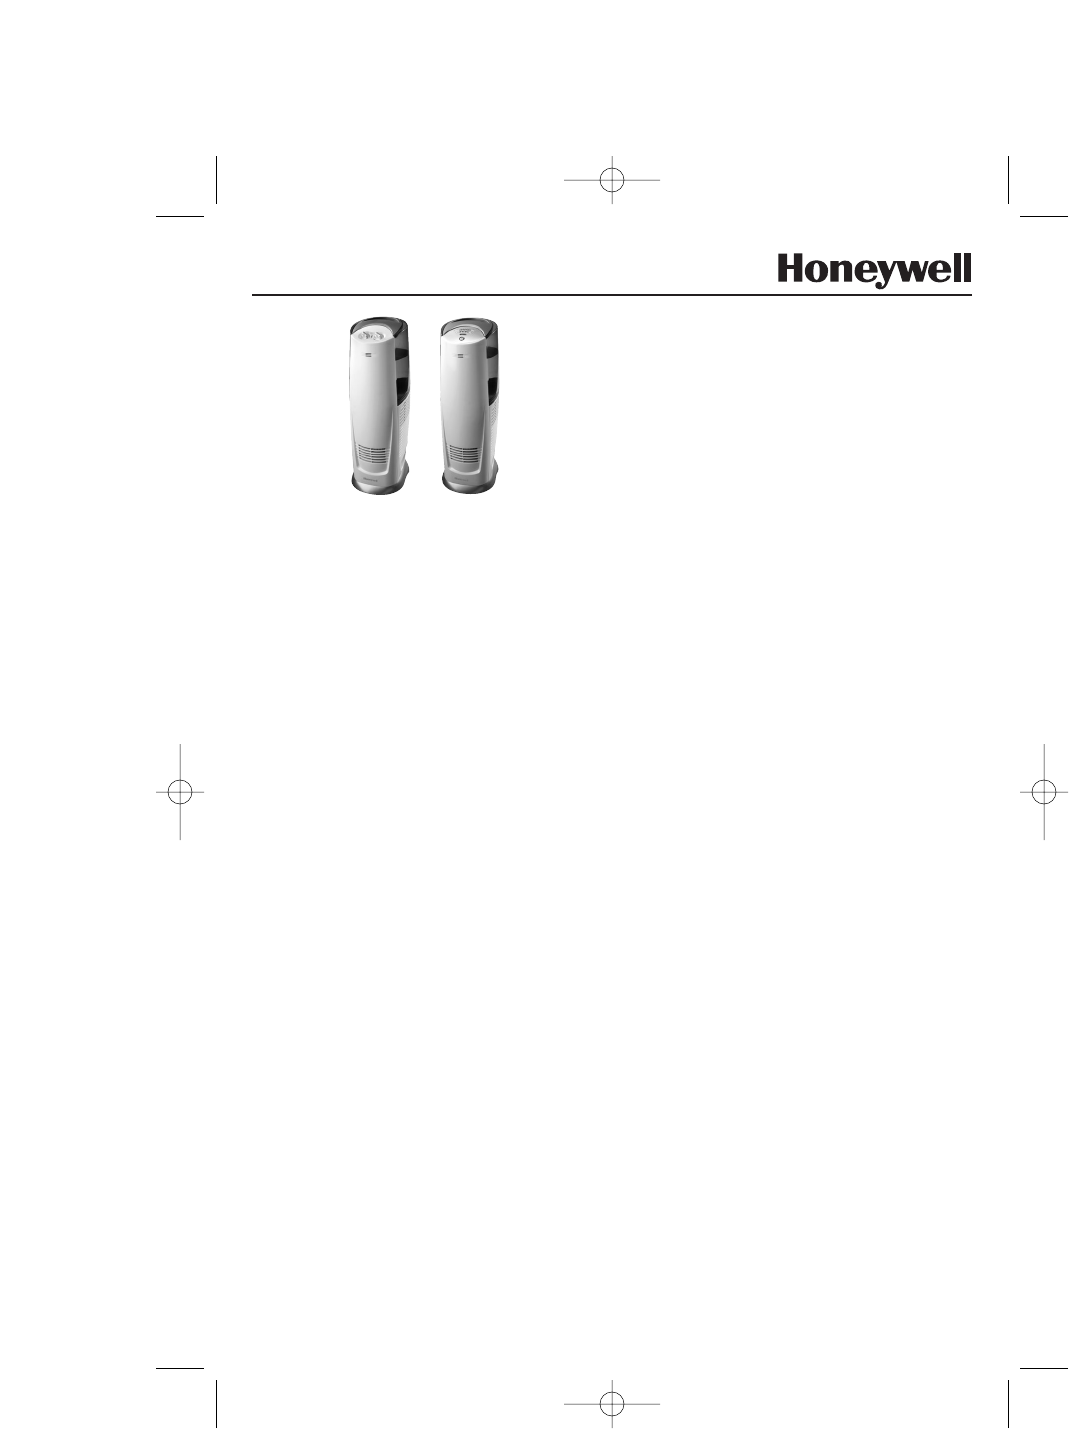 honeywell humidifier hcm 300t user guide manualsonline com cool moisture humidifiers